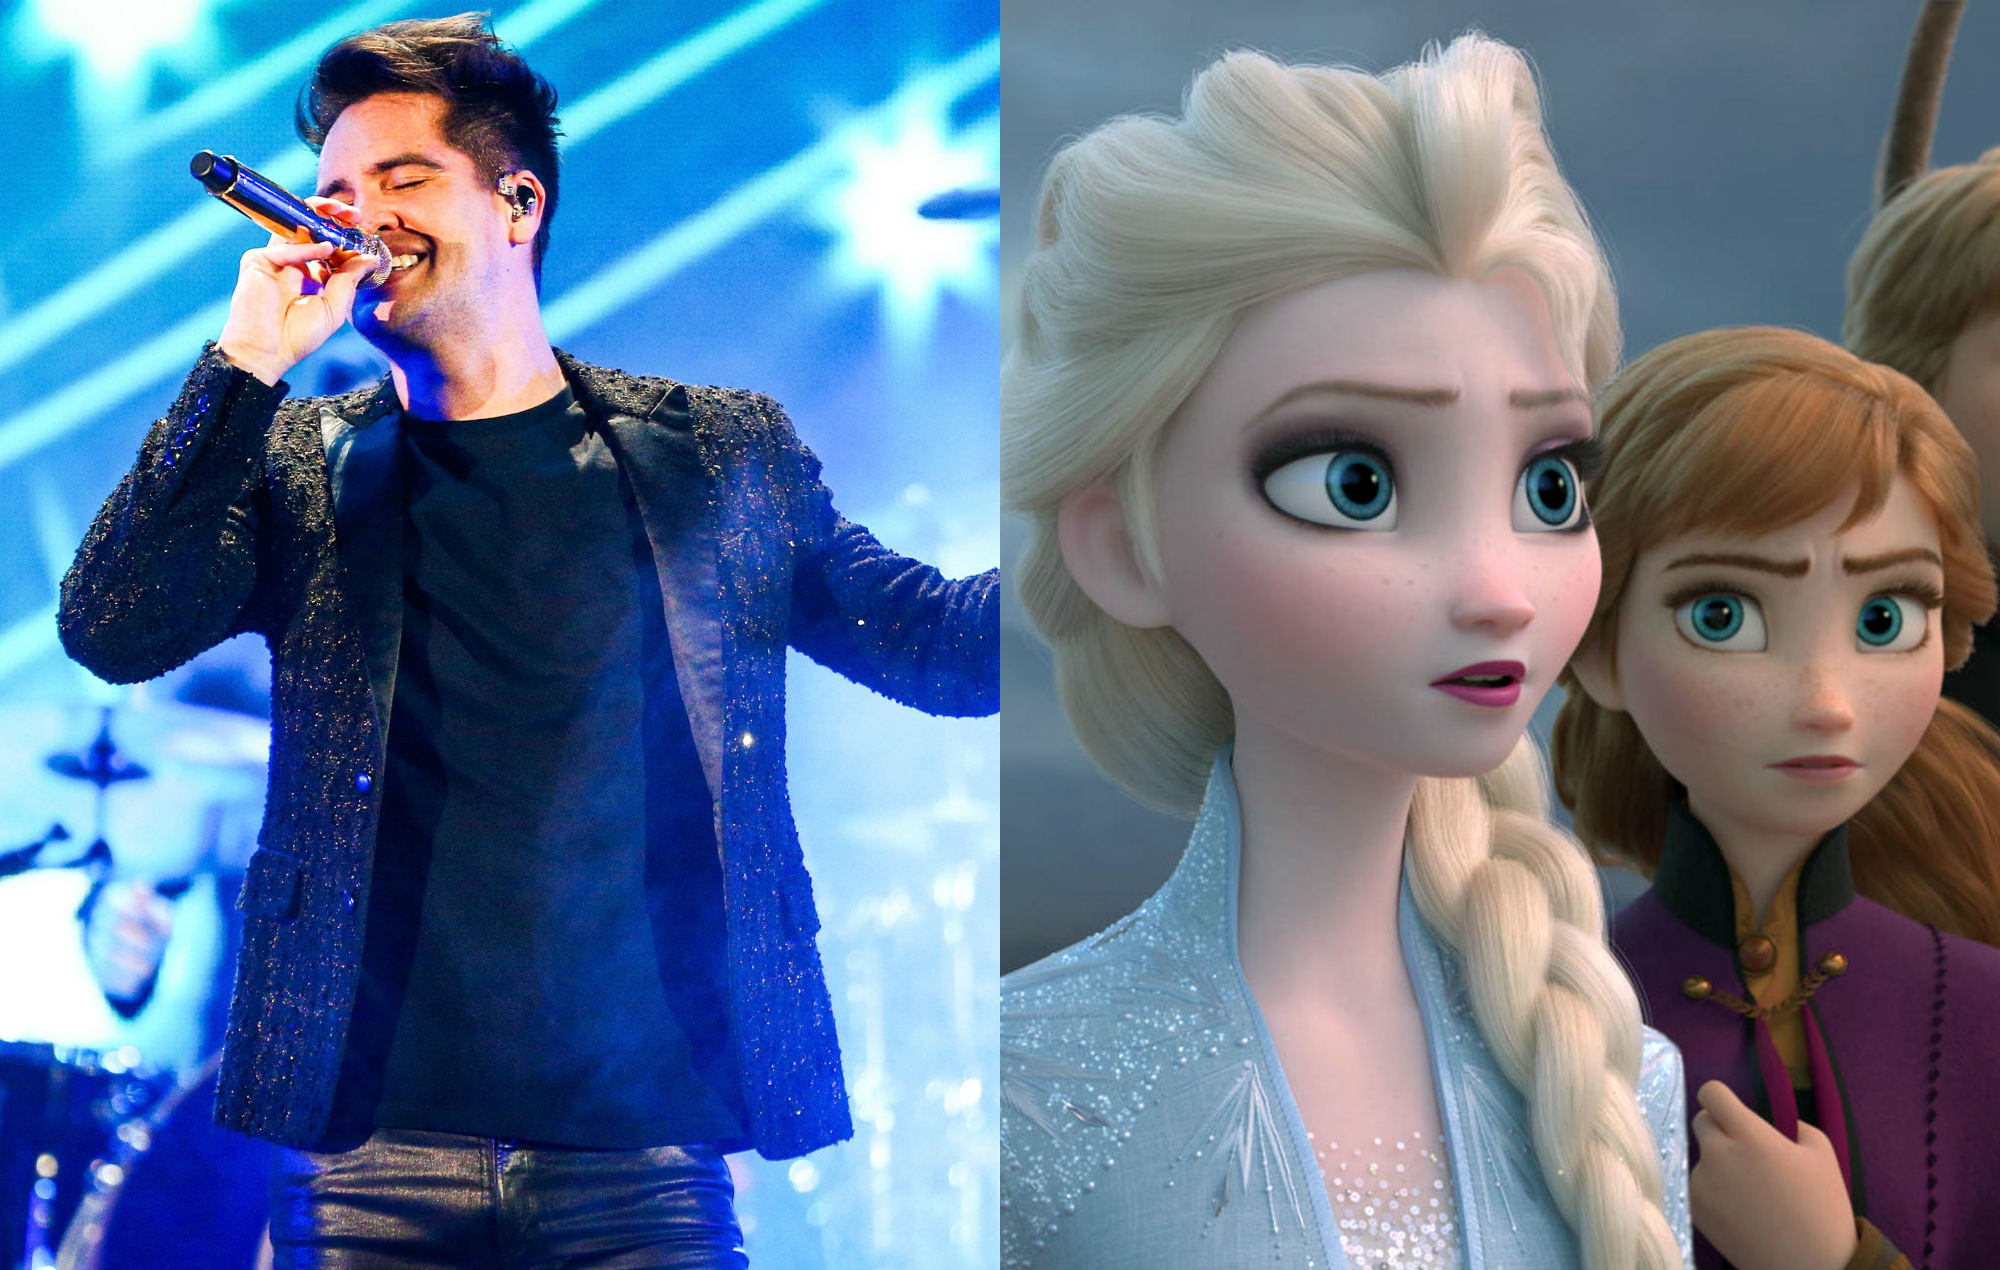 brendon-urie-panic-at-the-disco-frozen-2-song-getty-alamy@2000x1270.jpg